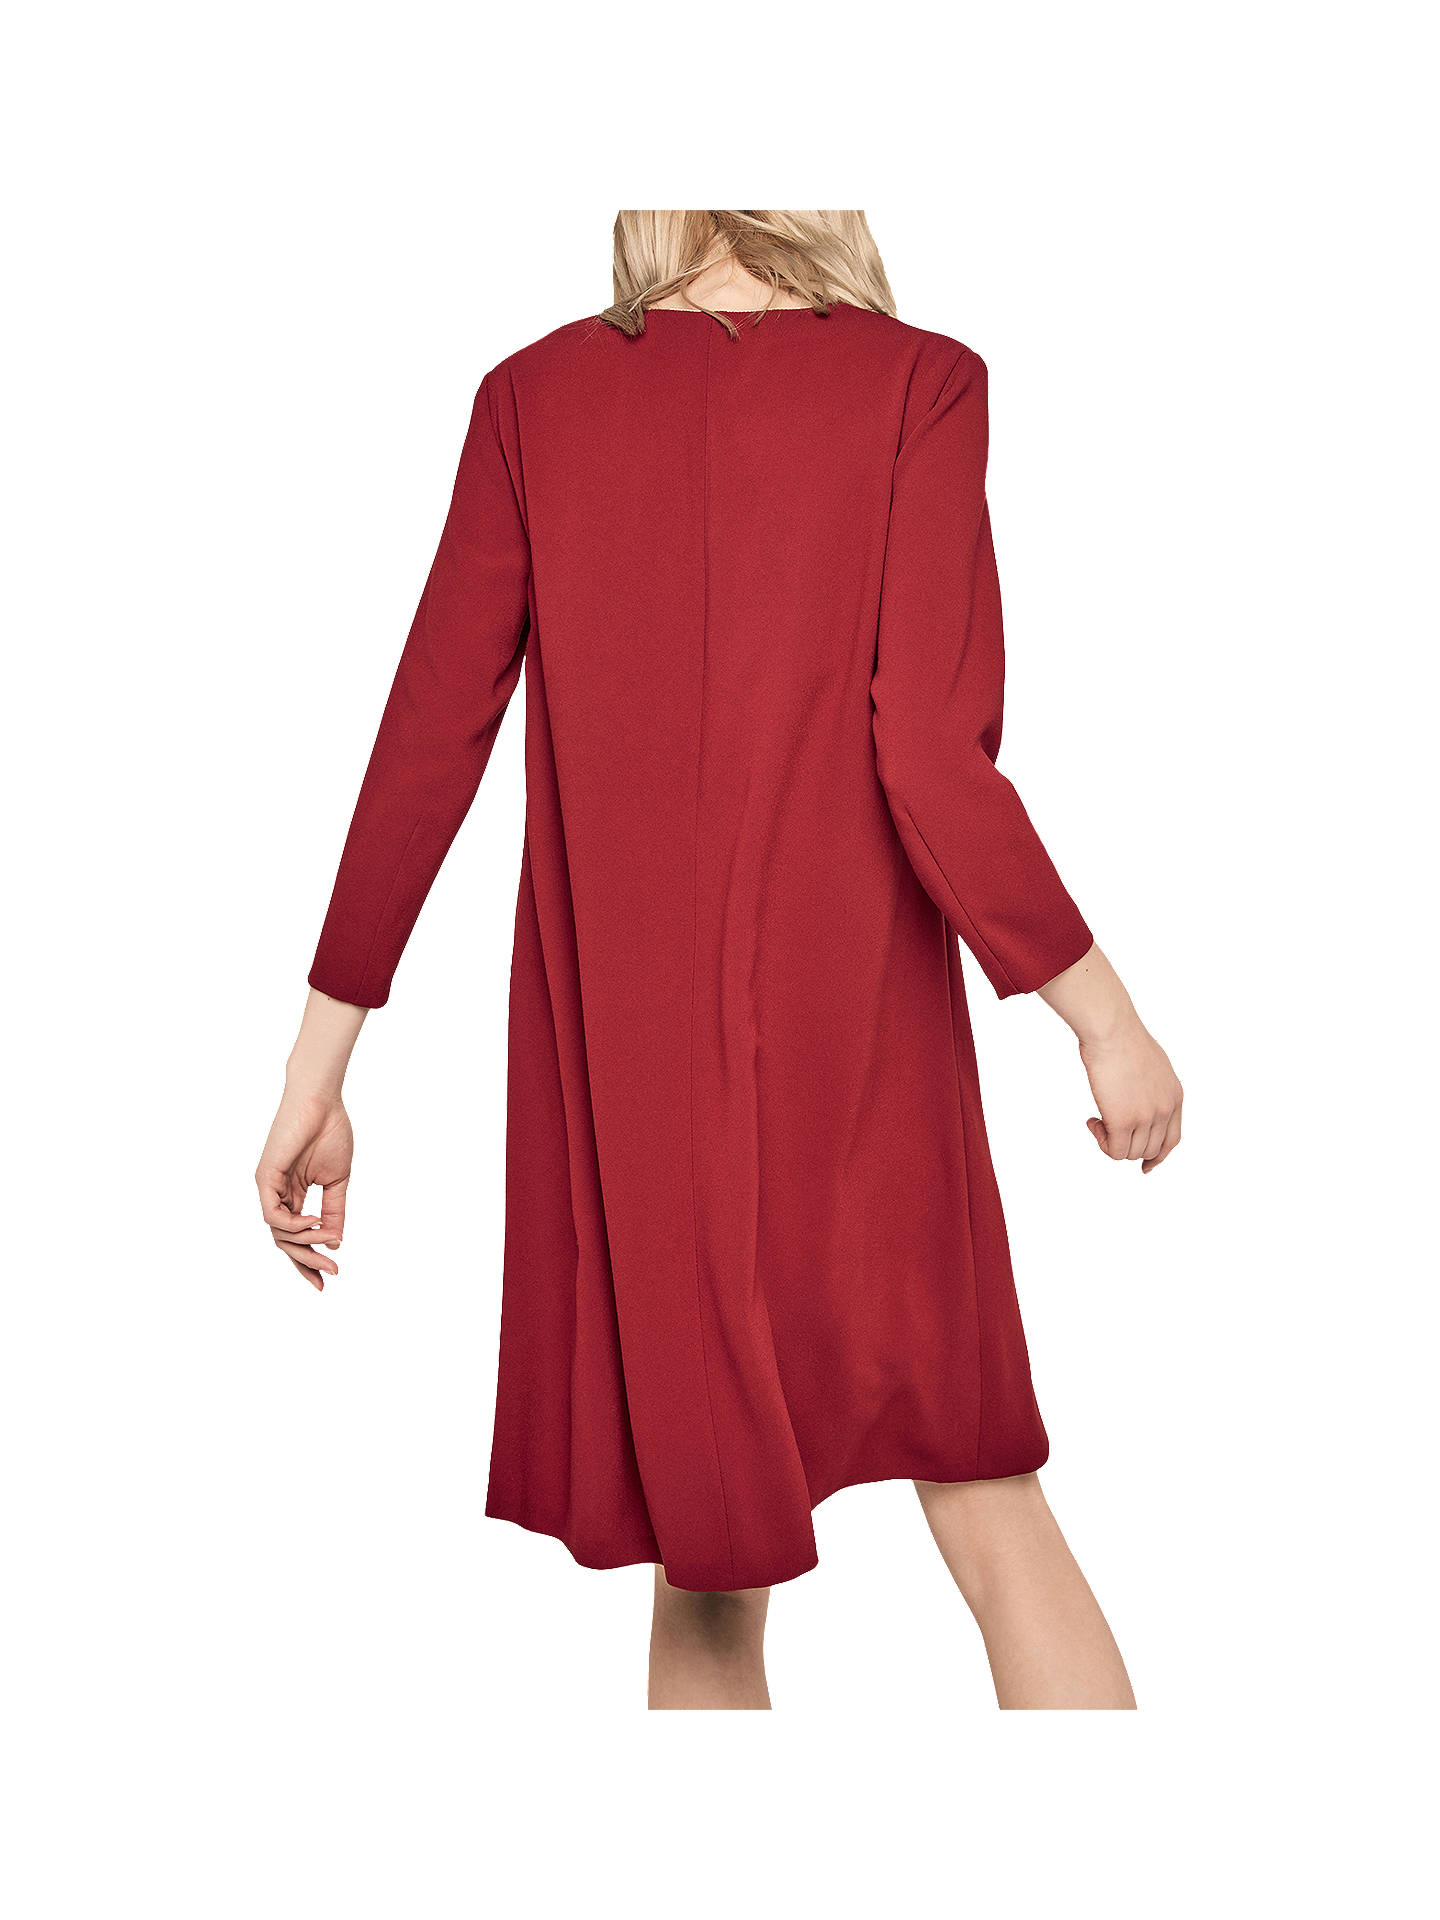 BuyGerard Darel Nadege Dress, Red, 10 Online at johnlewis.com